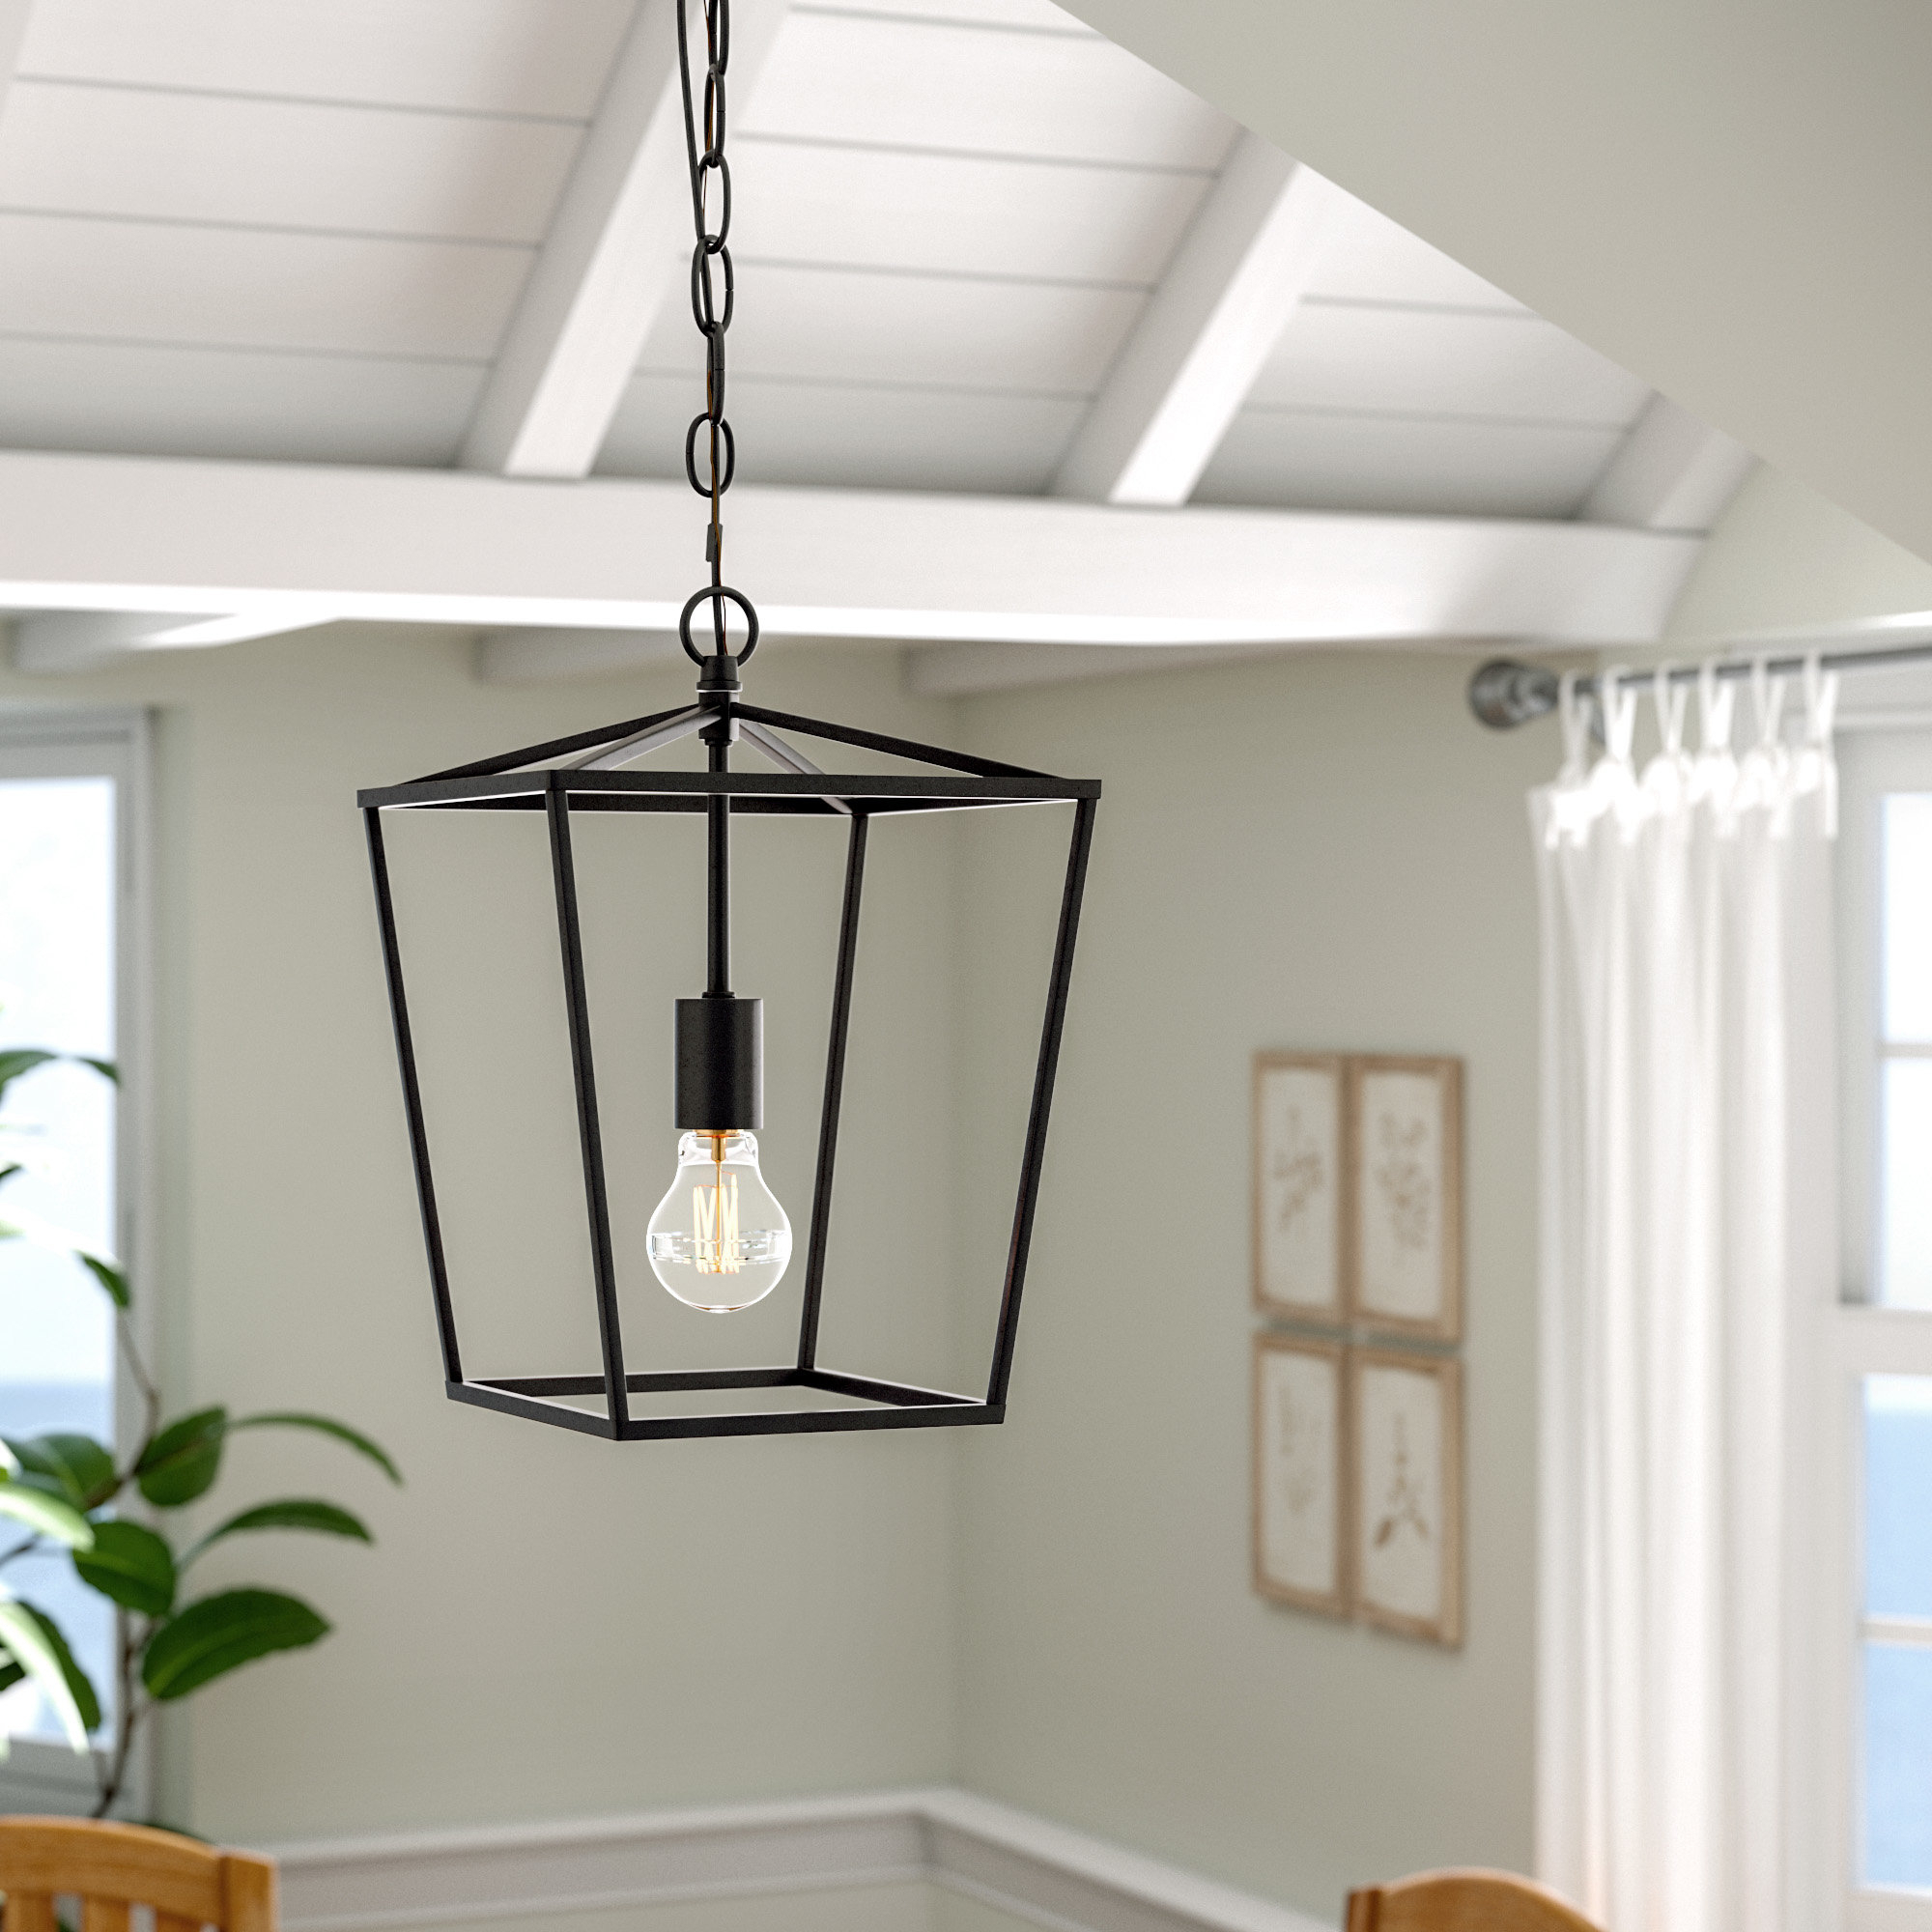 Most Recent Akash Industrial Vintage 1 Light Geometric Pendants Throughout Vintage Barn Lighting Pendant (View 15 of 20)